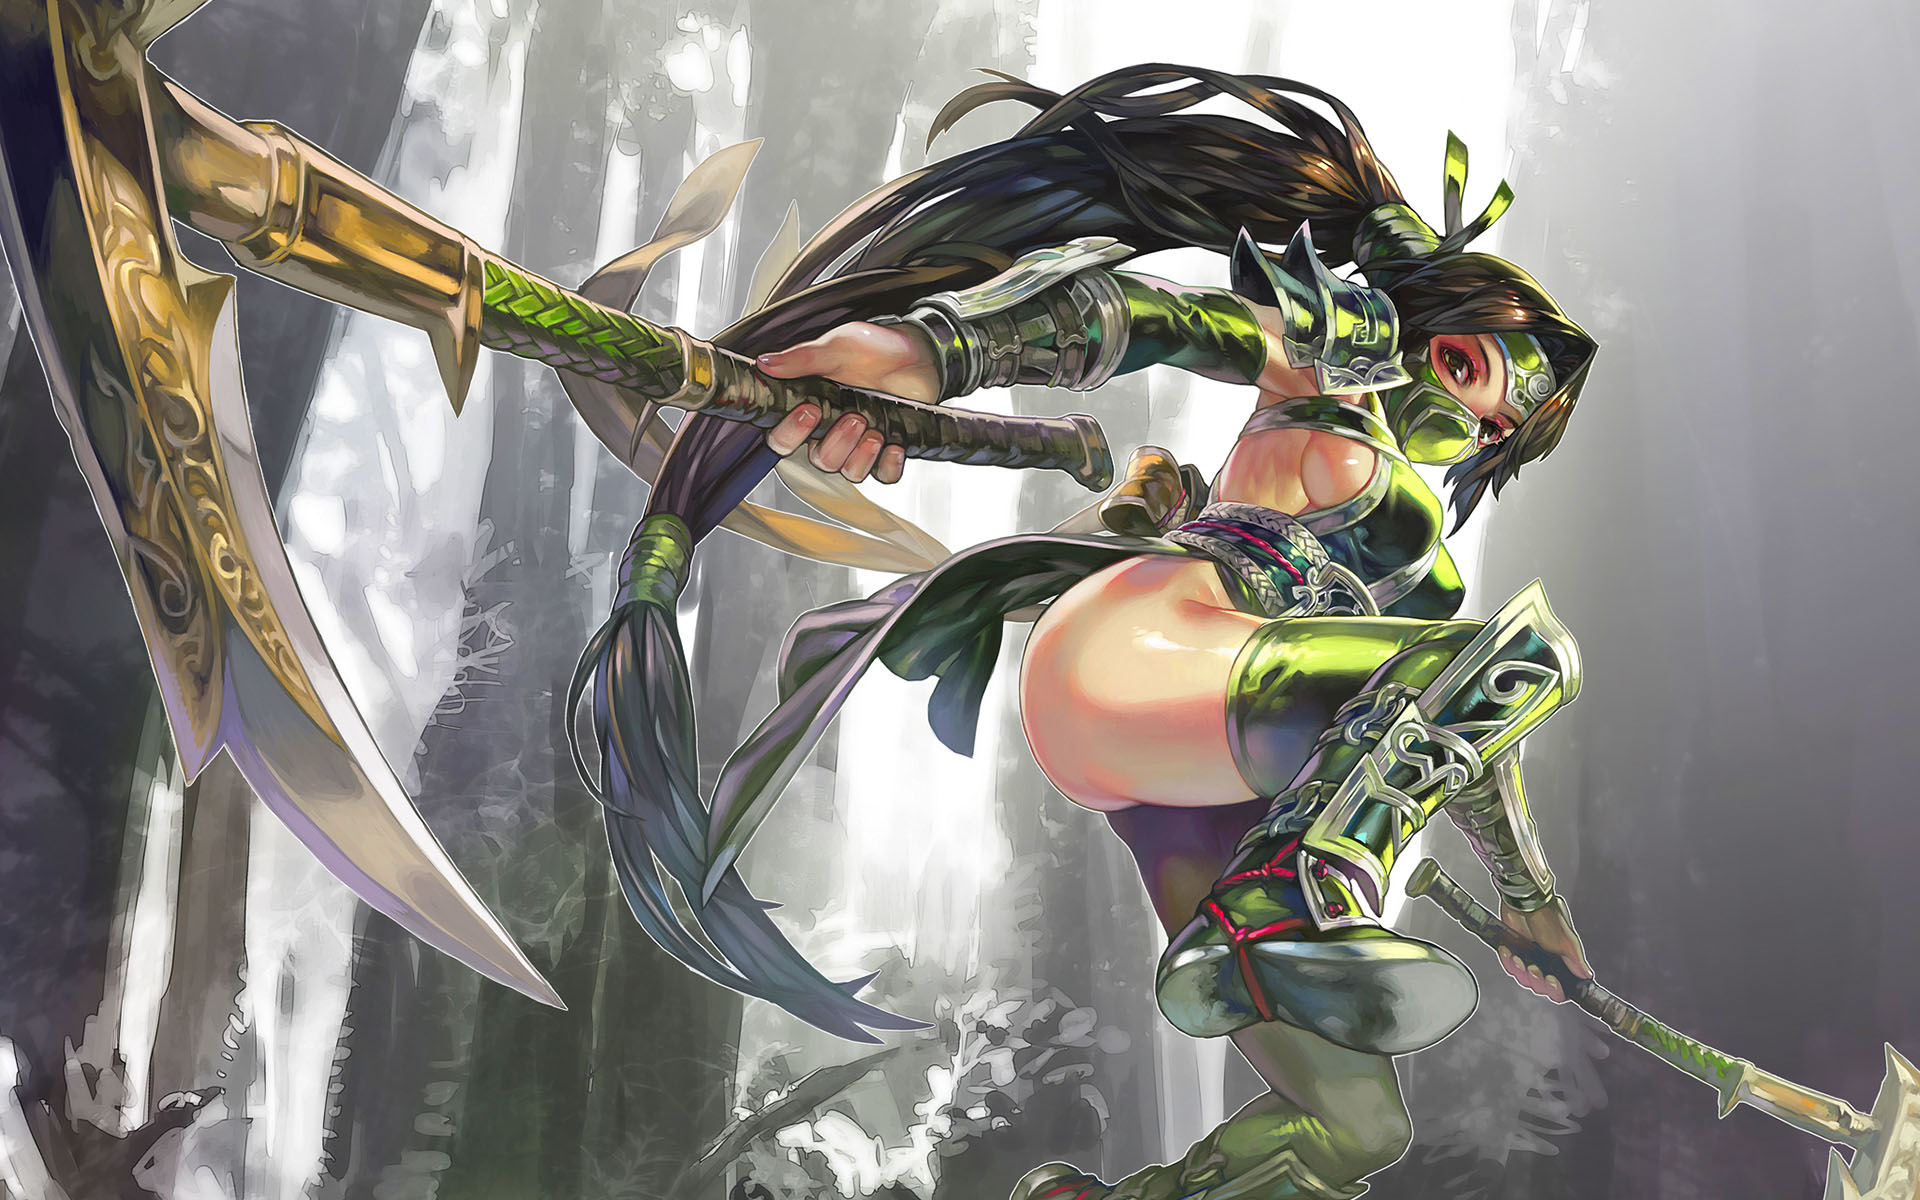 Boy With Car Hd Wallpaper League Of Legends Akali Hd Wallpapers Free Download